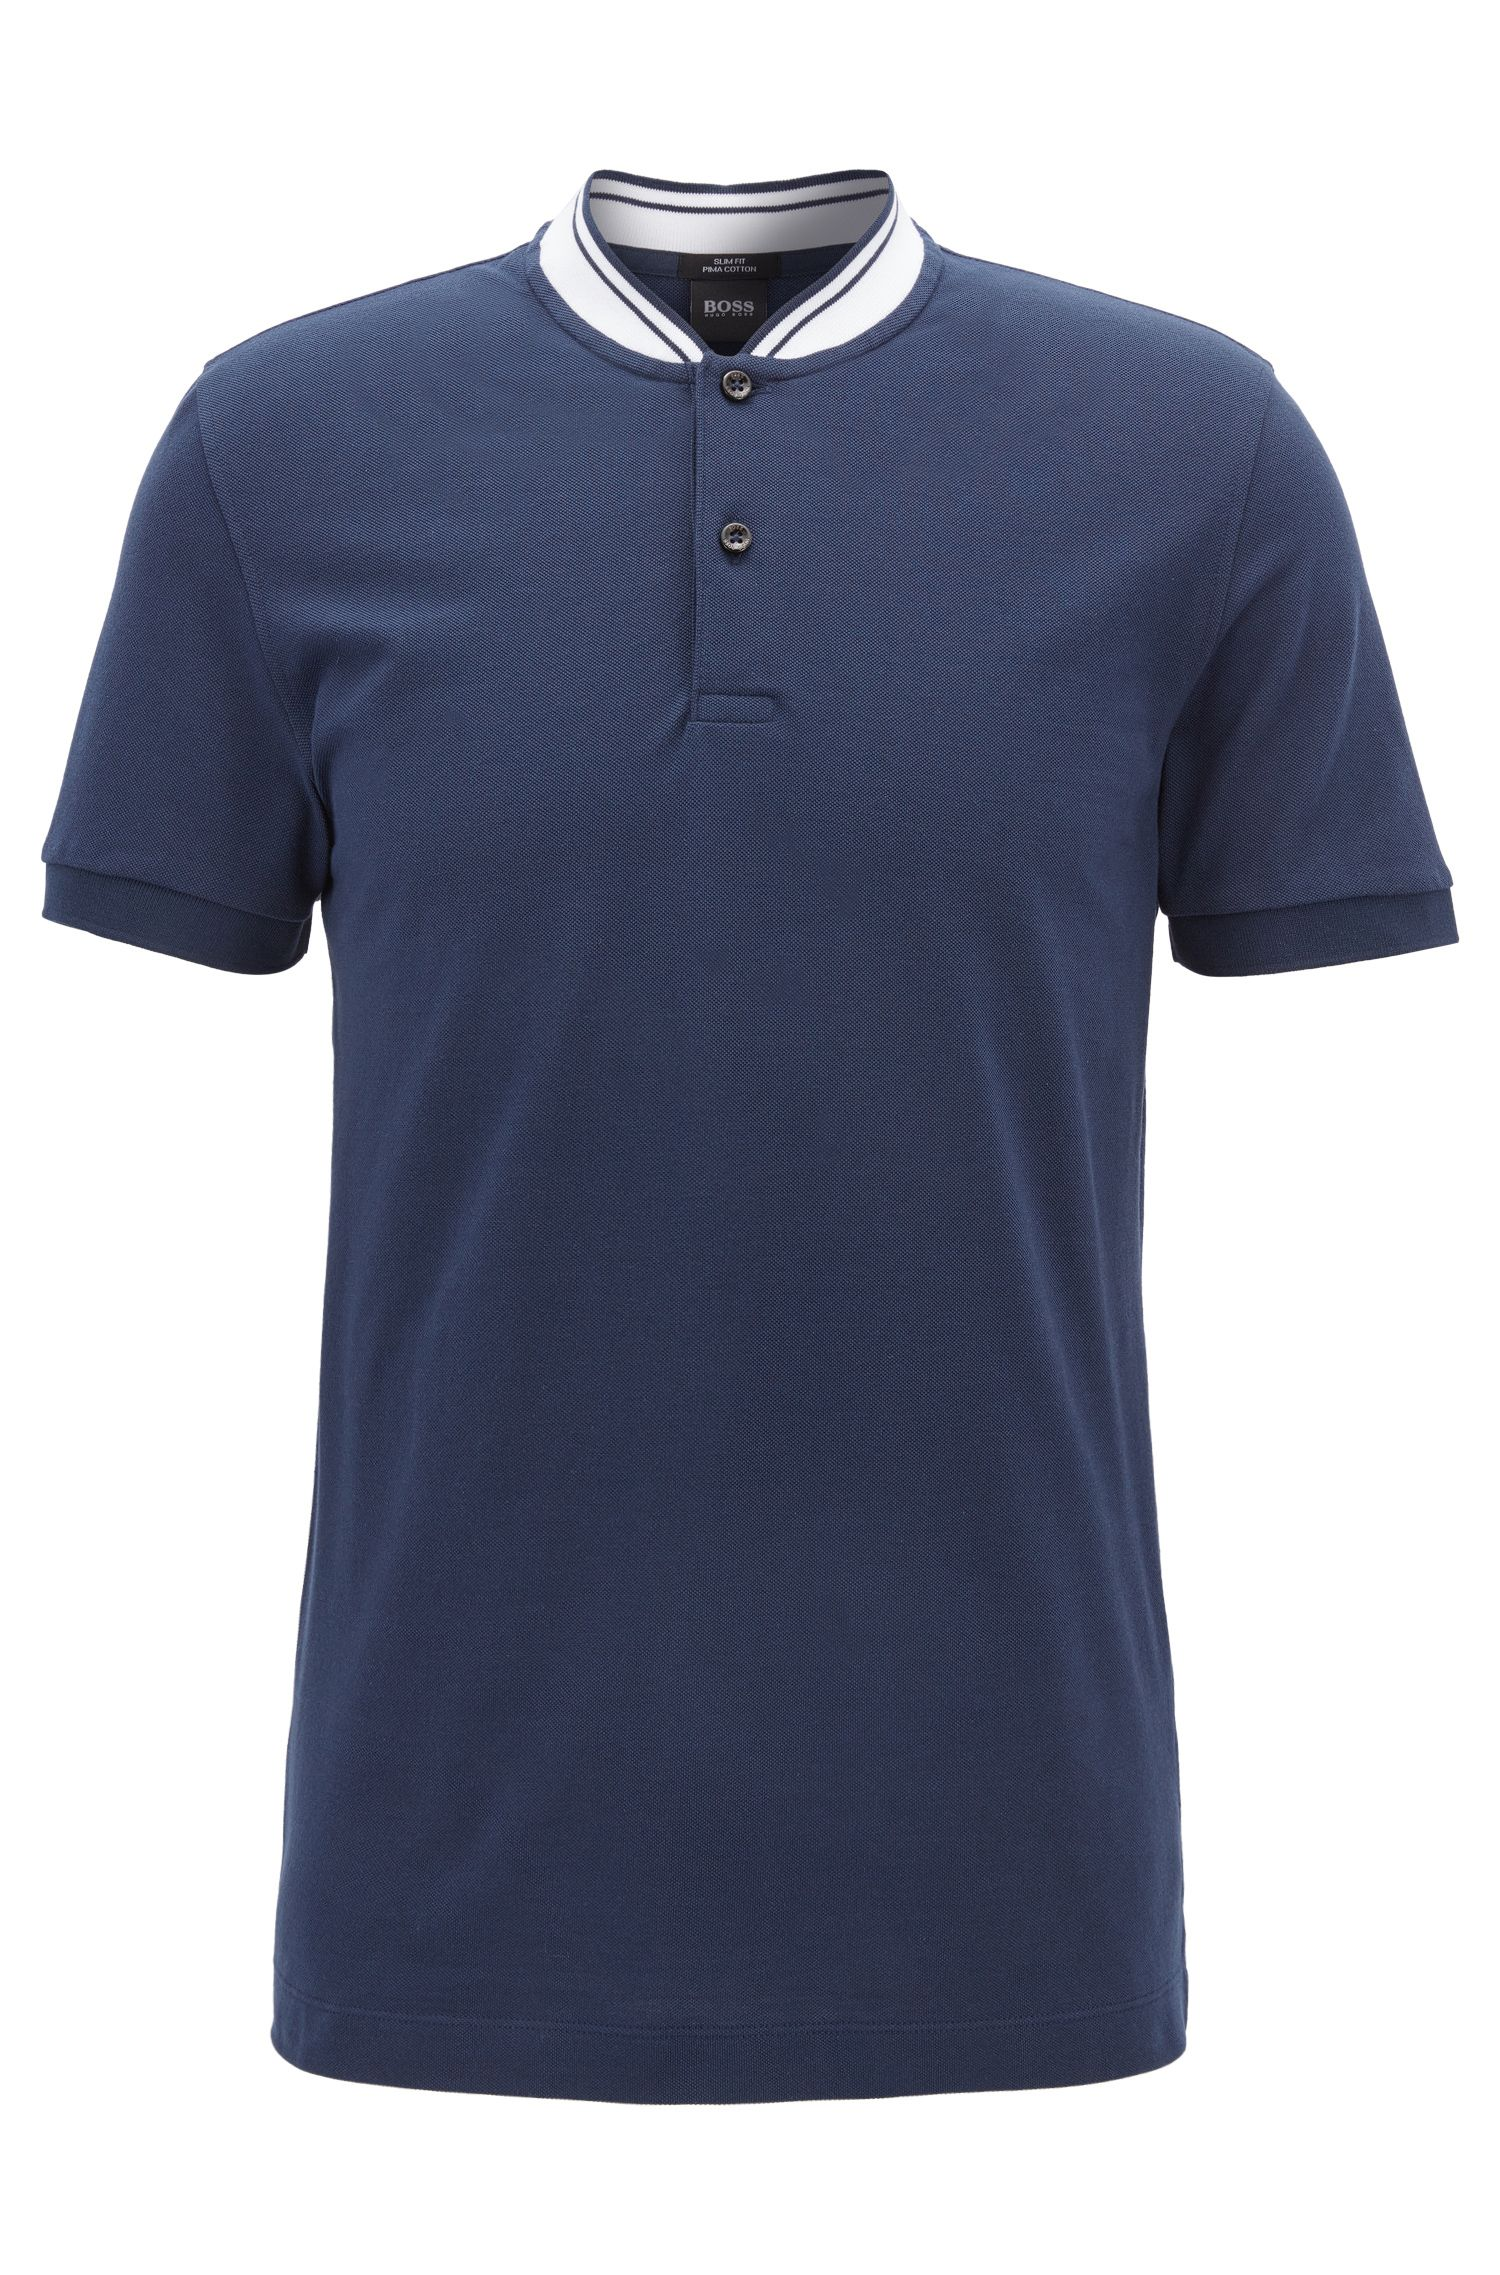 Piqué-cotton Henley shirt in a slim fit